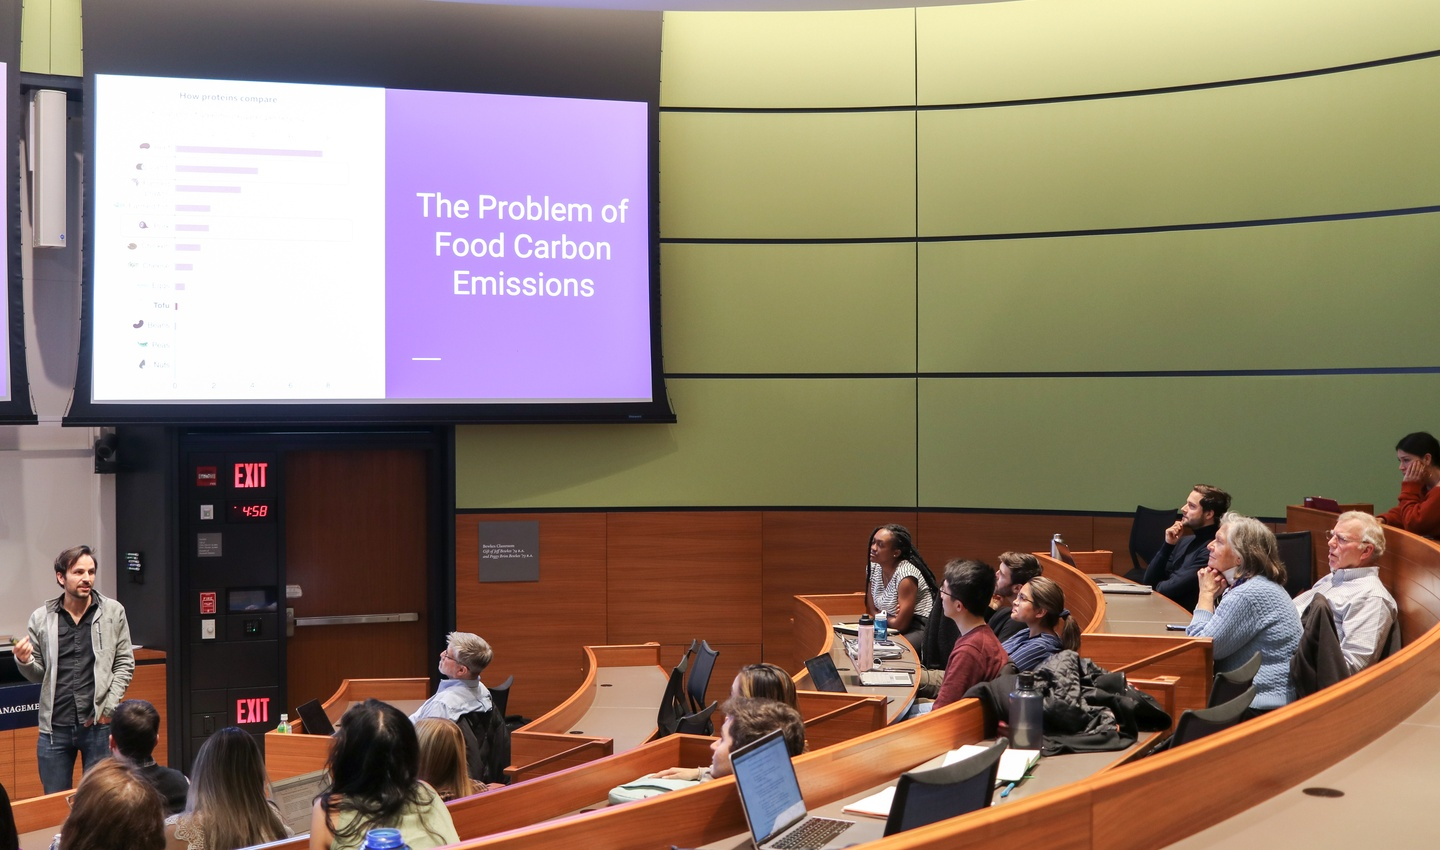 Students present on food carbon emissions in lecture hall